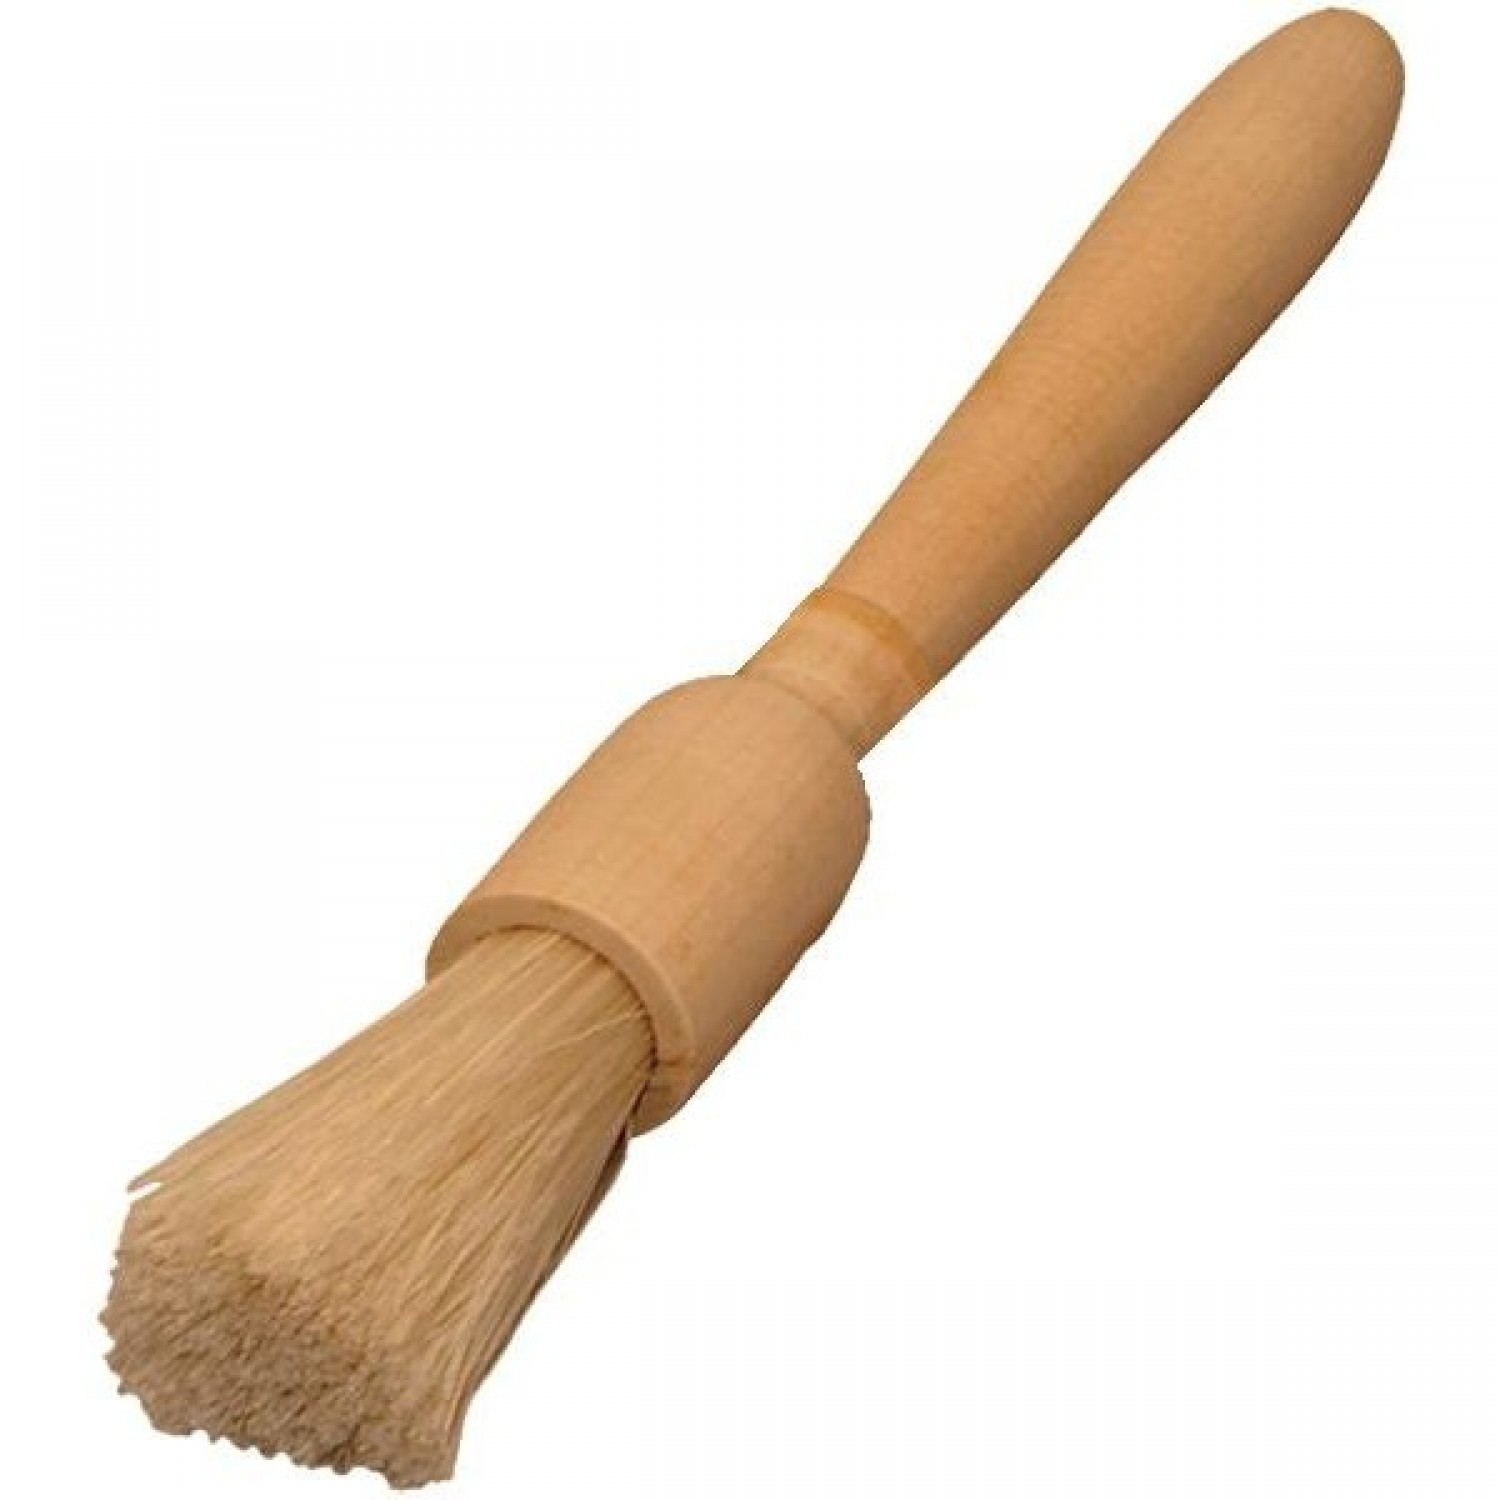 Pastry Brush of sustainable beechwood + natural bristles